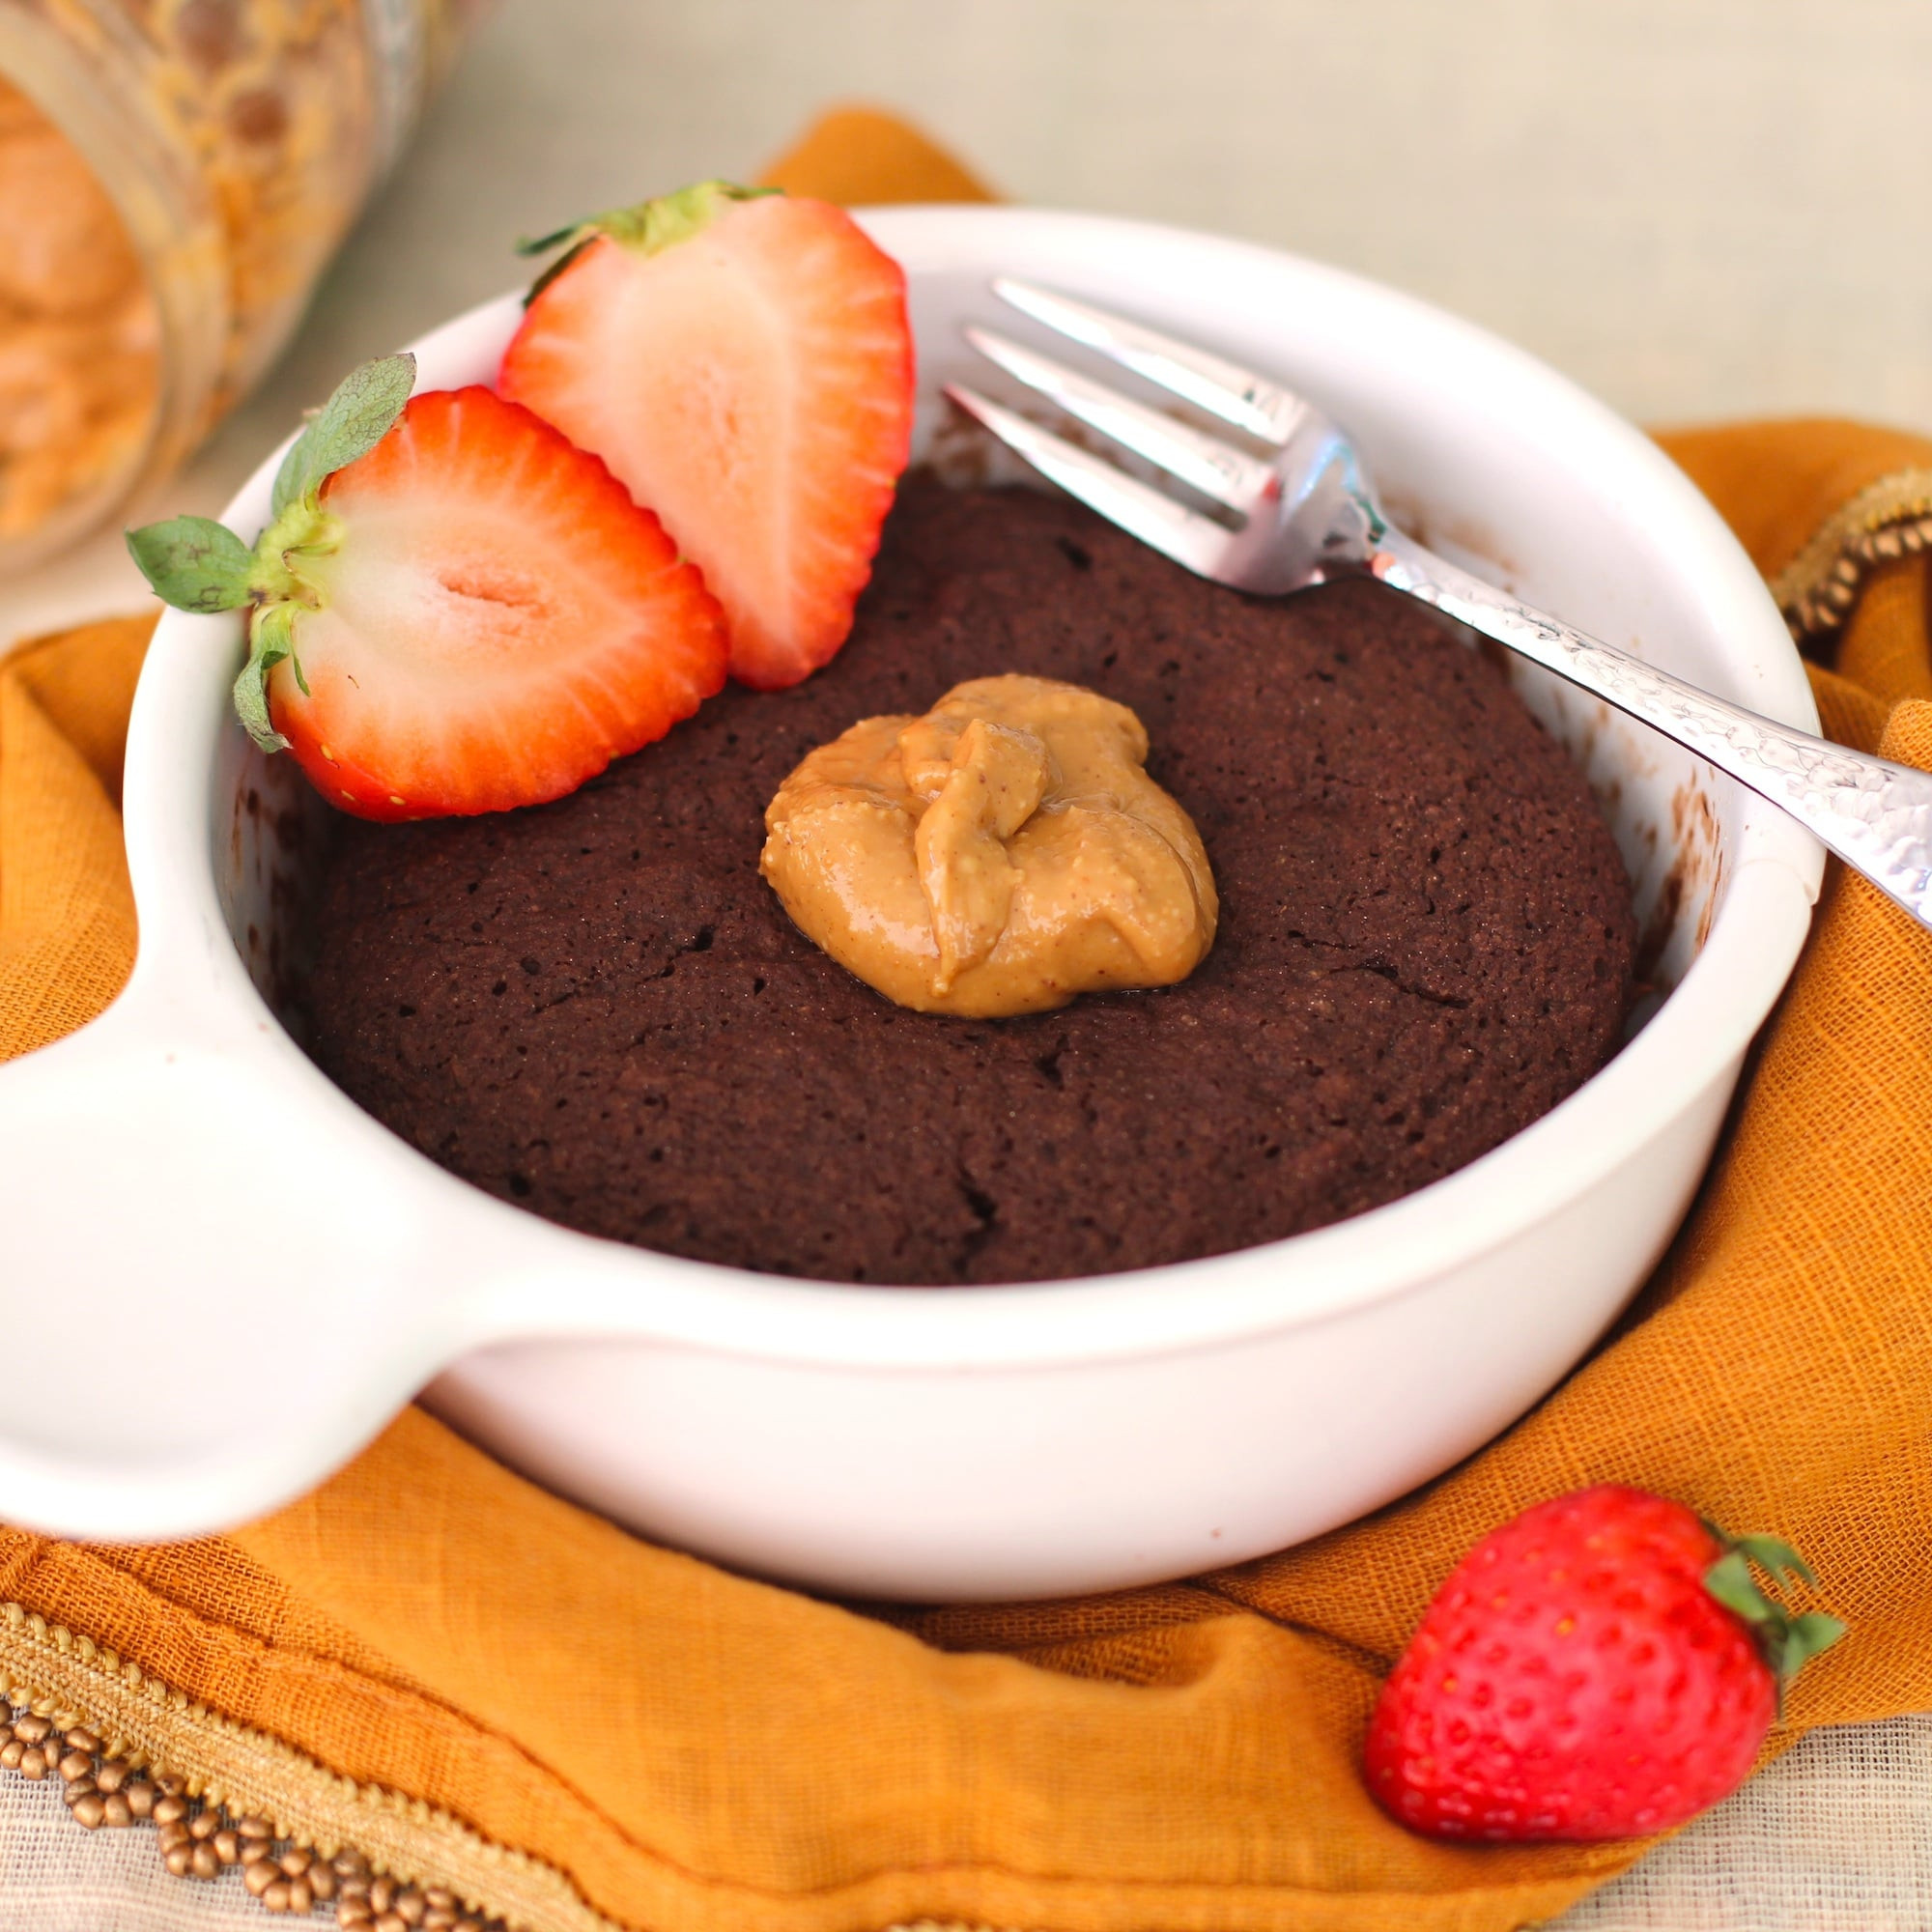 Healthy Peanut Butter Dessert Recipes  Desserts With Benefits Healthy Single Serving Chocolate